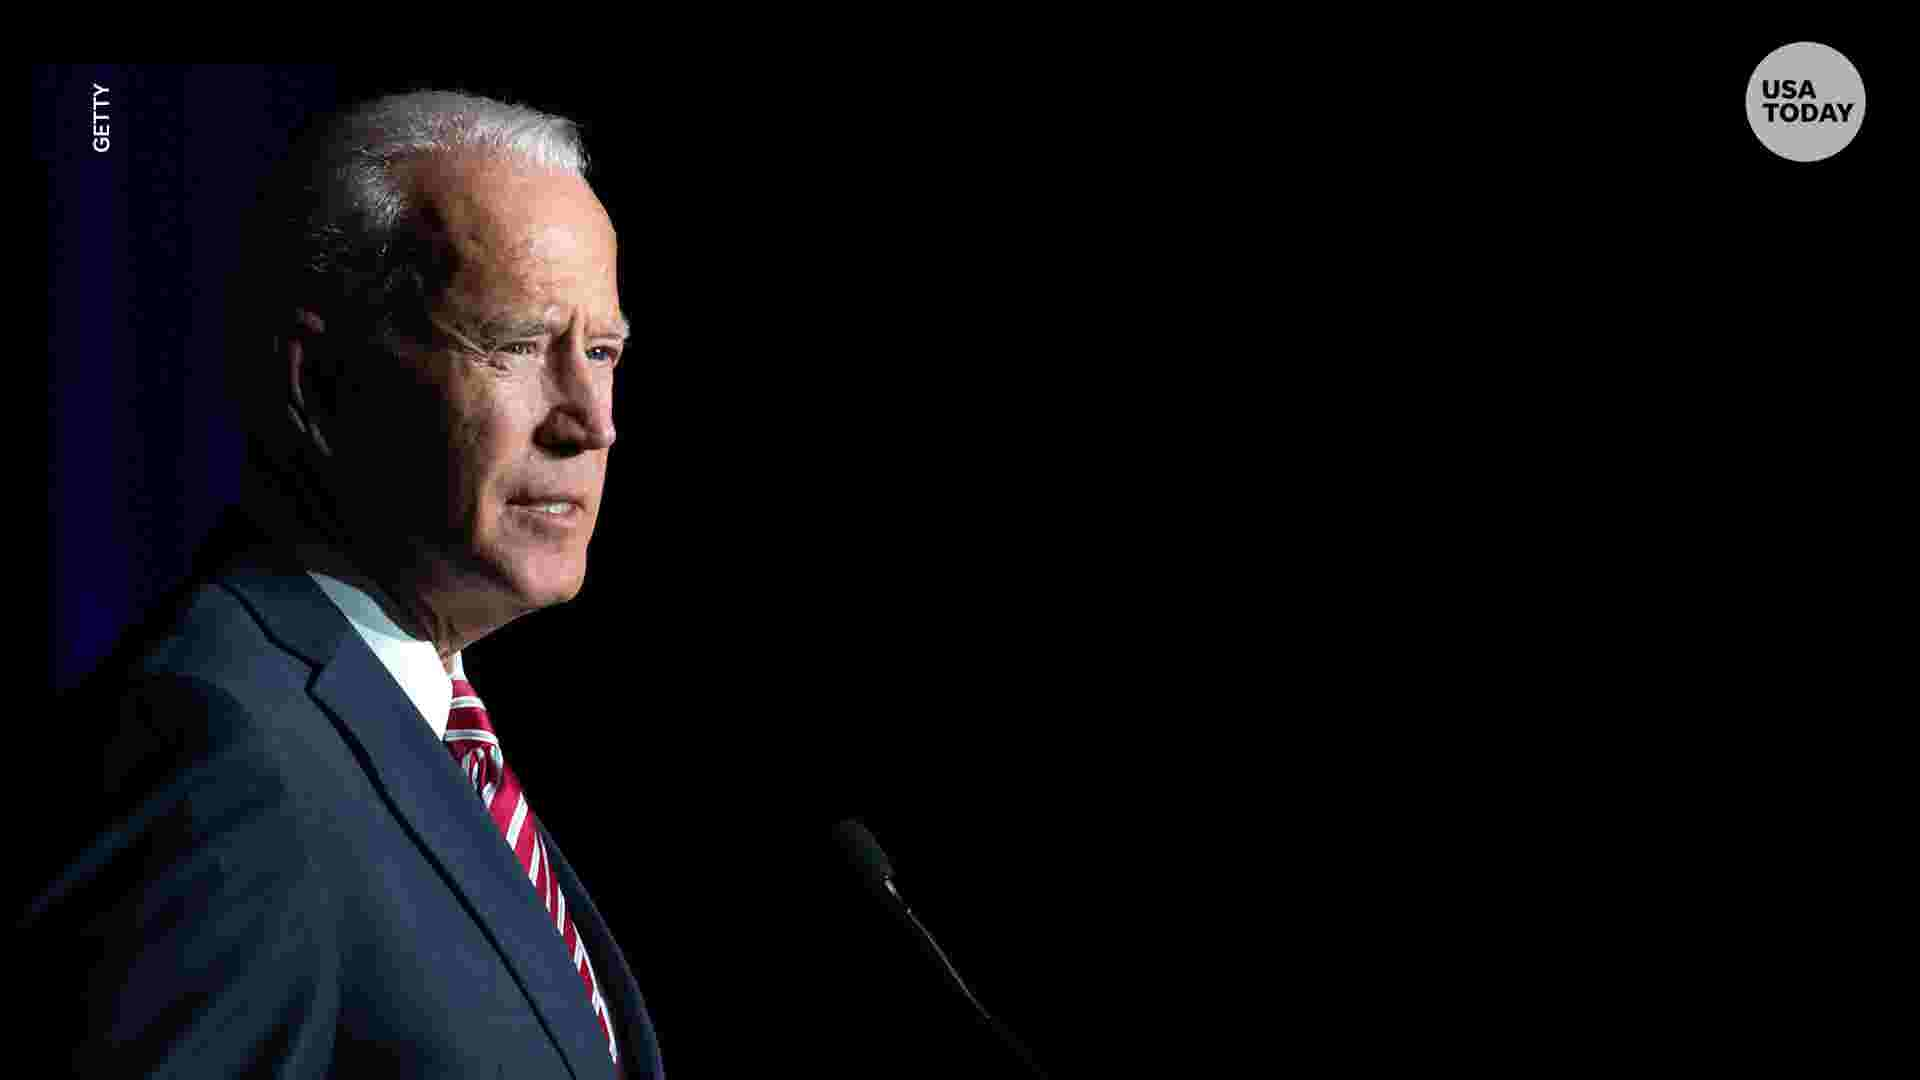 Joe Biden Says He Ll Be More Mindful Of People S Personal Space